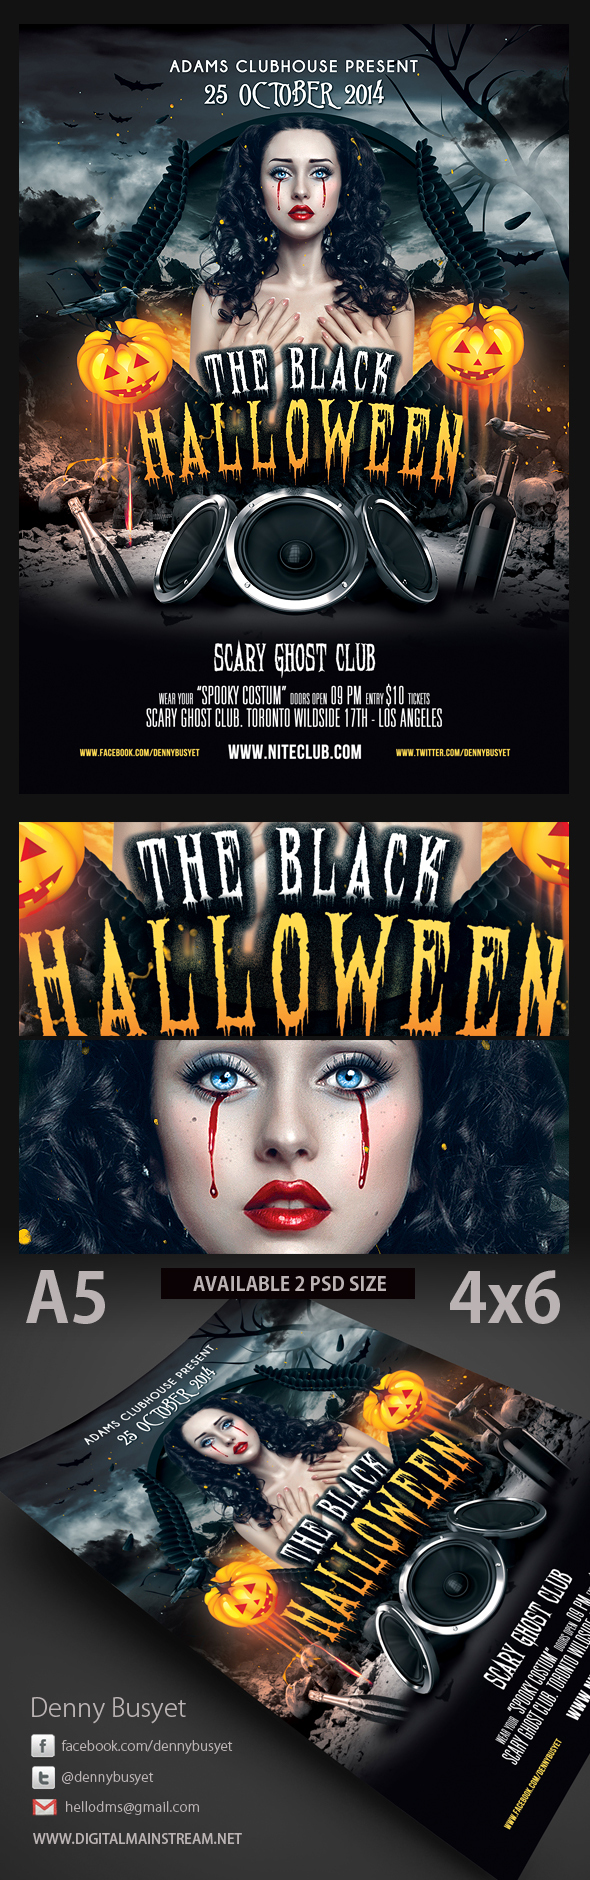 black-halloween-flyer